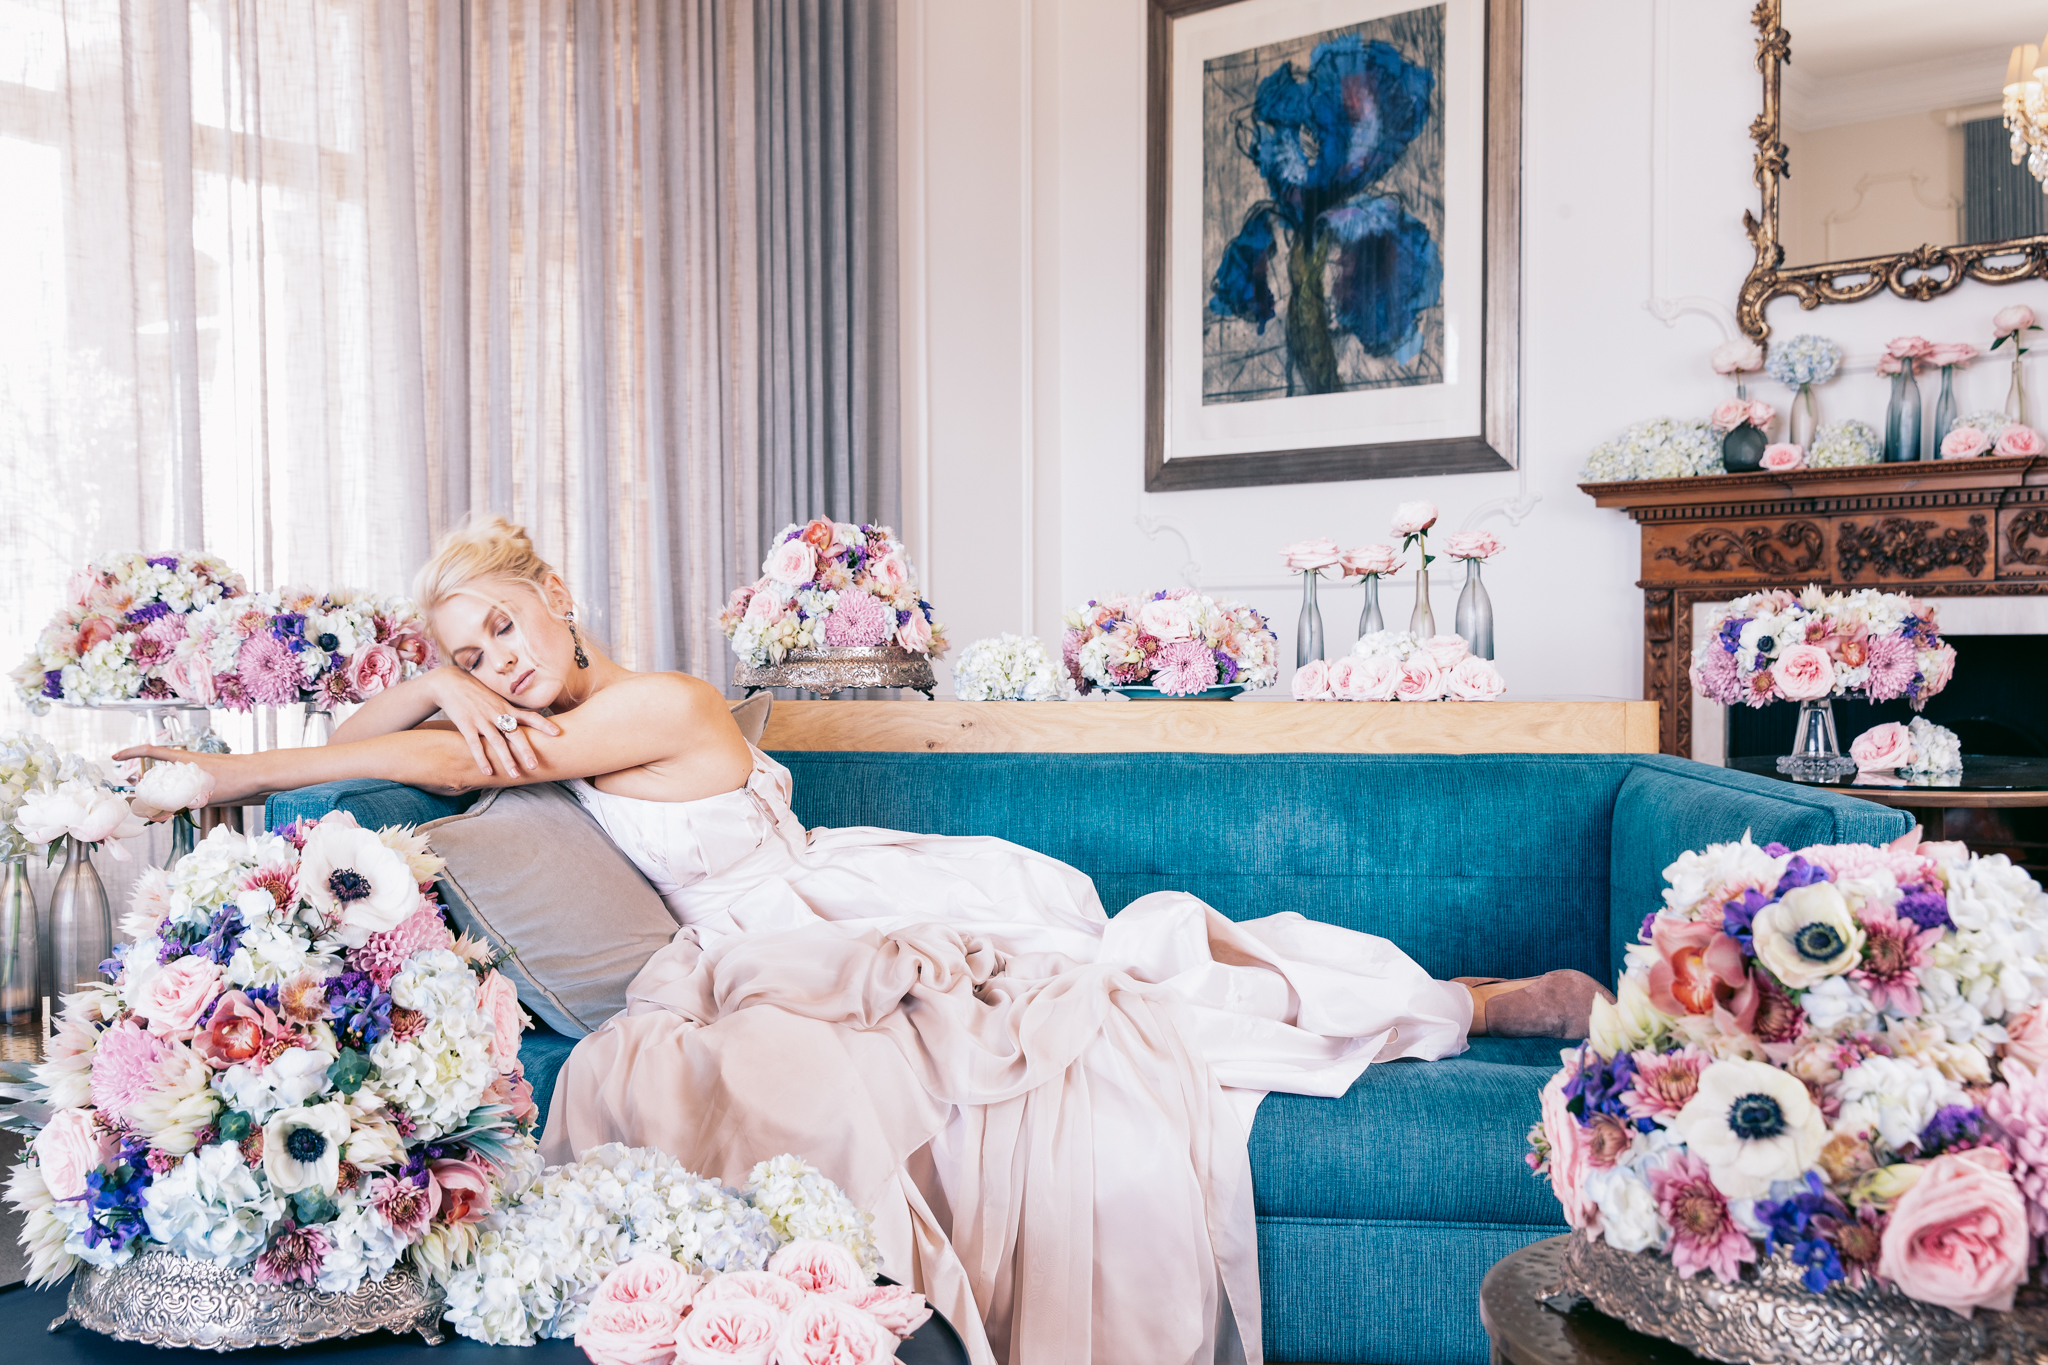 Girl lying on couch in pale pink KluK CGDT dress with champagne in hand surrounded by flowers at Ellerman House